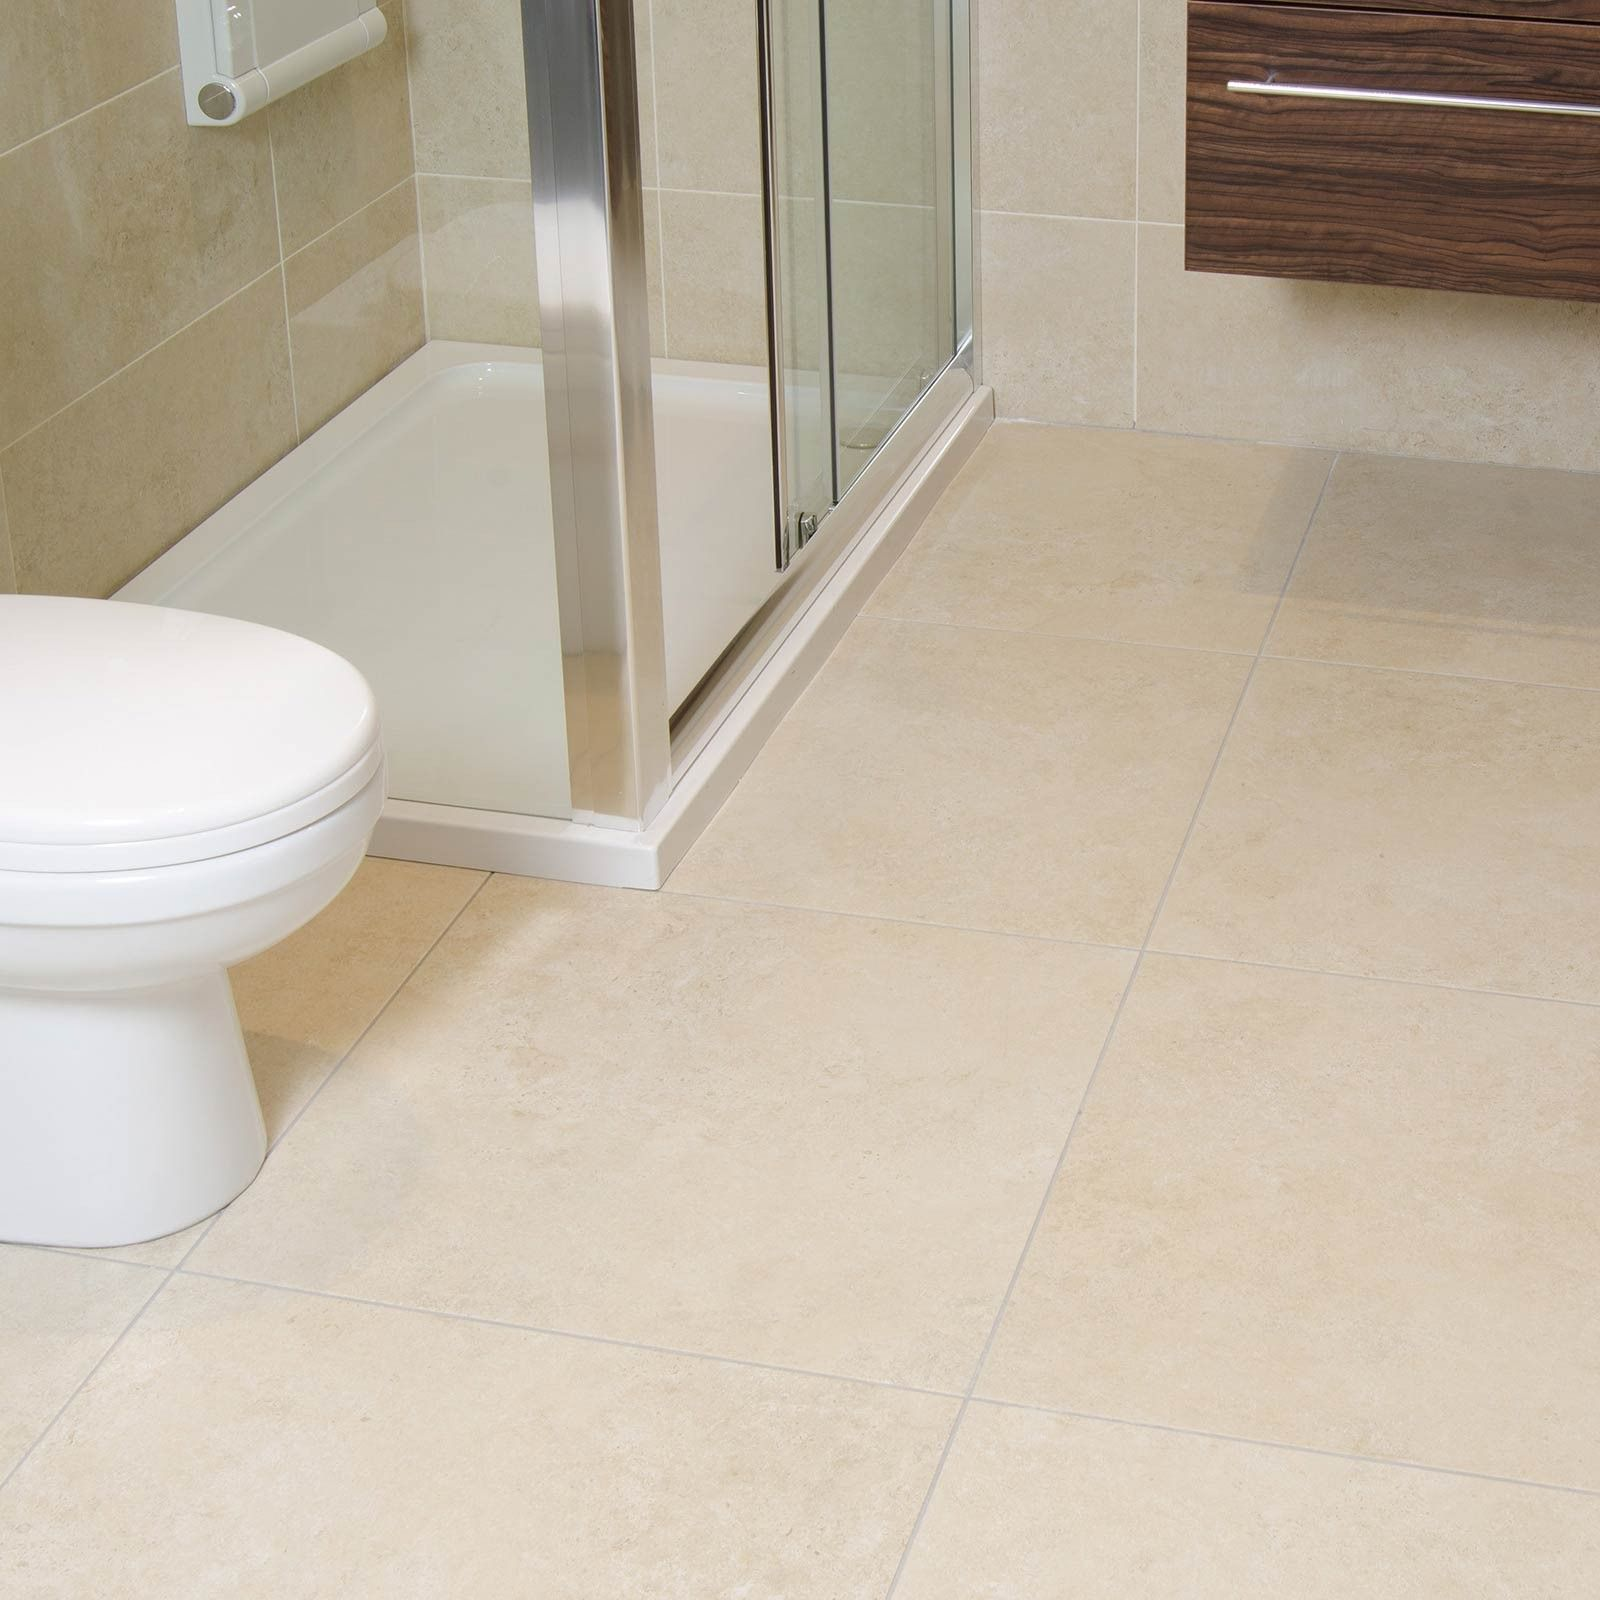 Nature marfil floor tile apartment decoration pinterest nature marfil floor tile dailygadgetfo Image collections